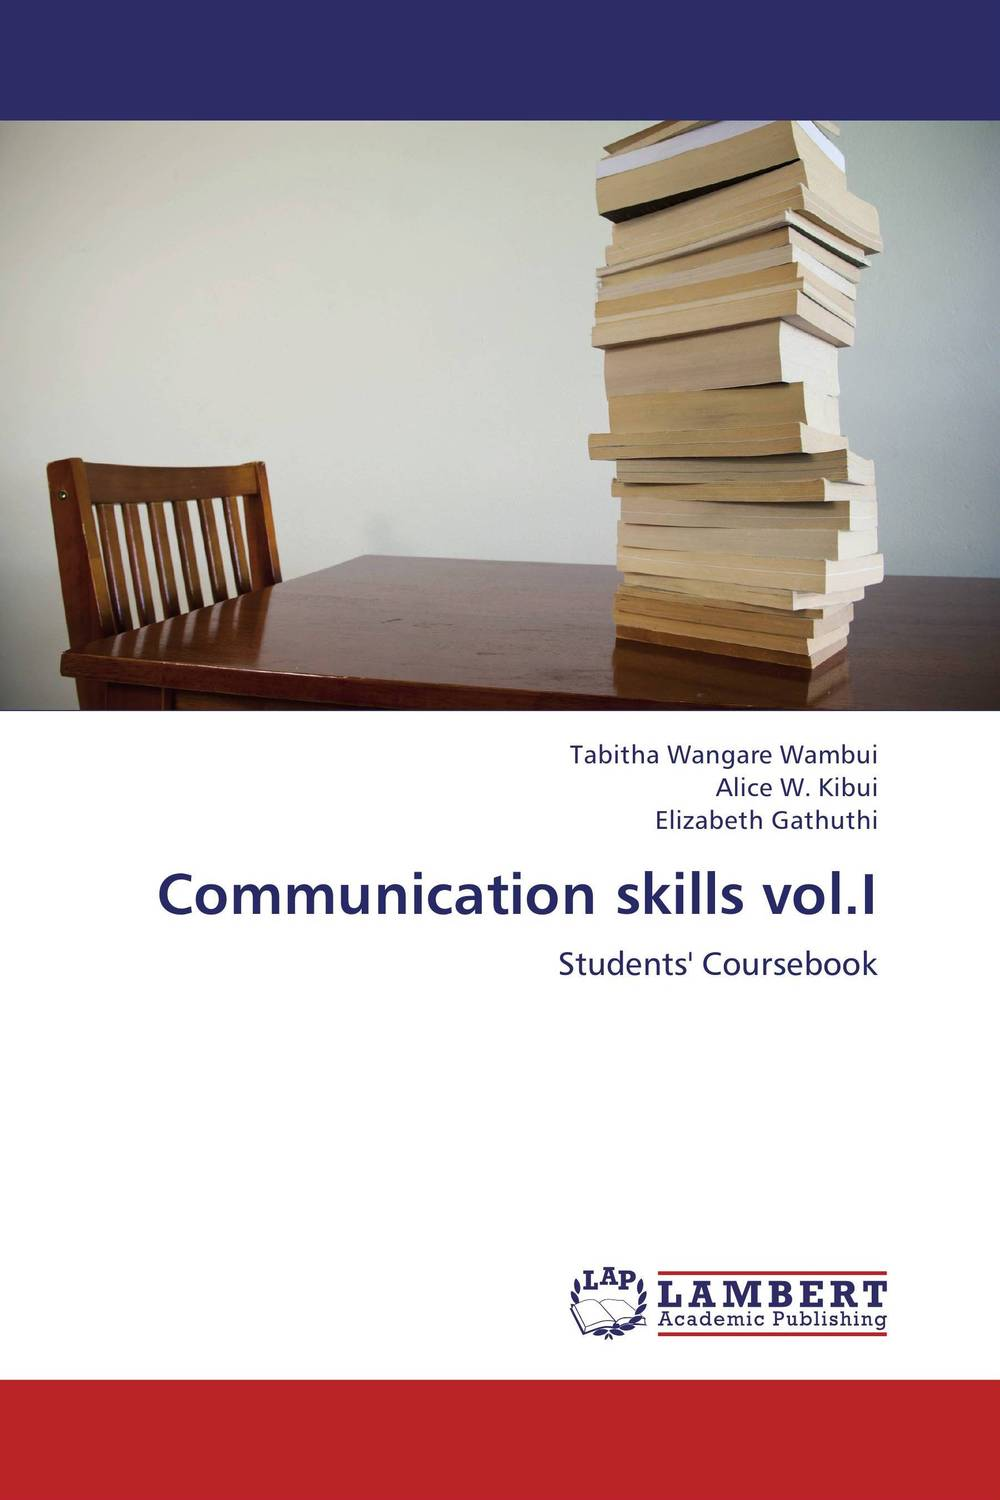 Communication skills vol.I mohamad zakaria the role and function of effective communication